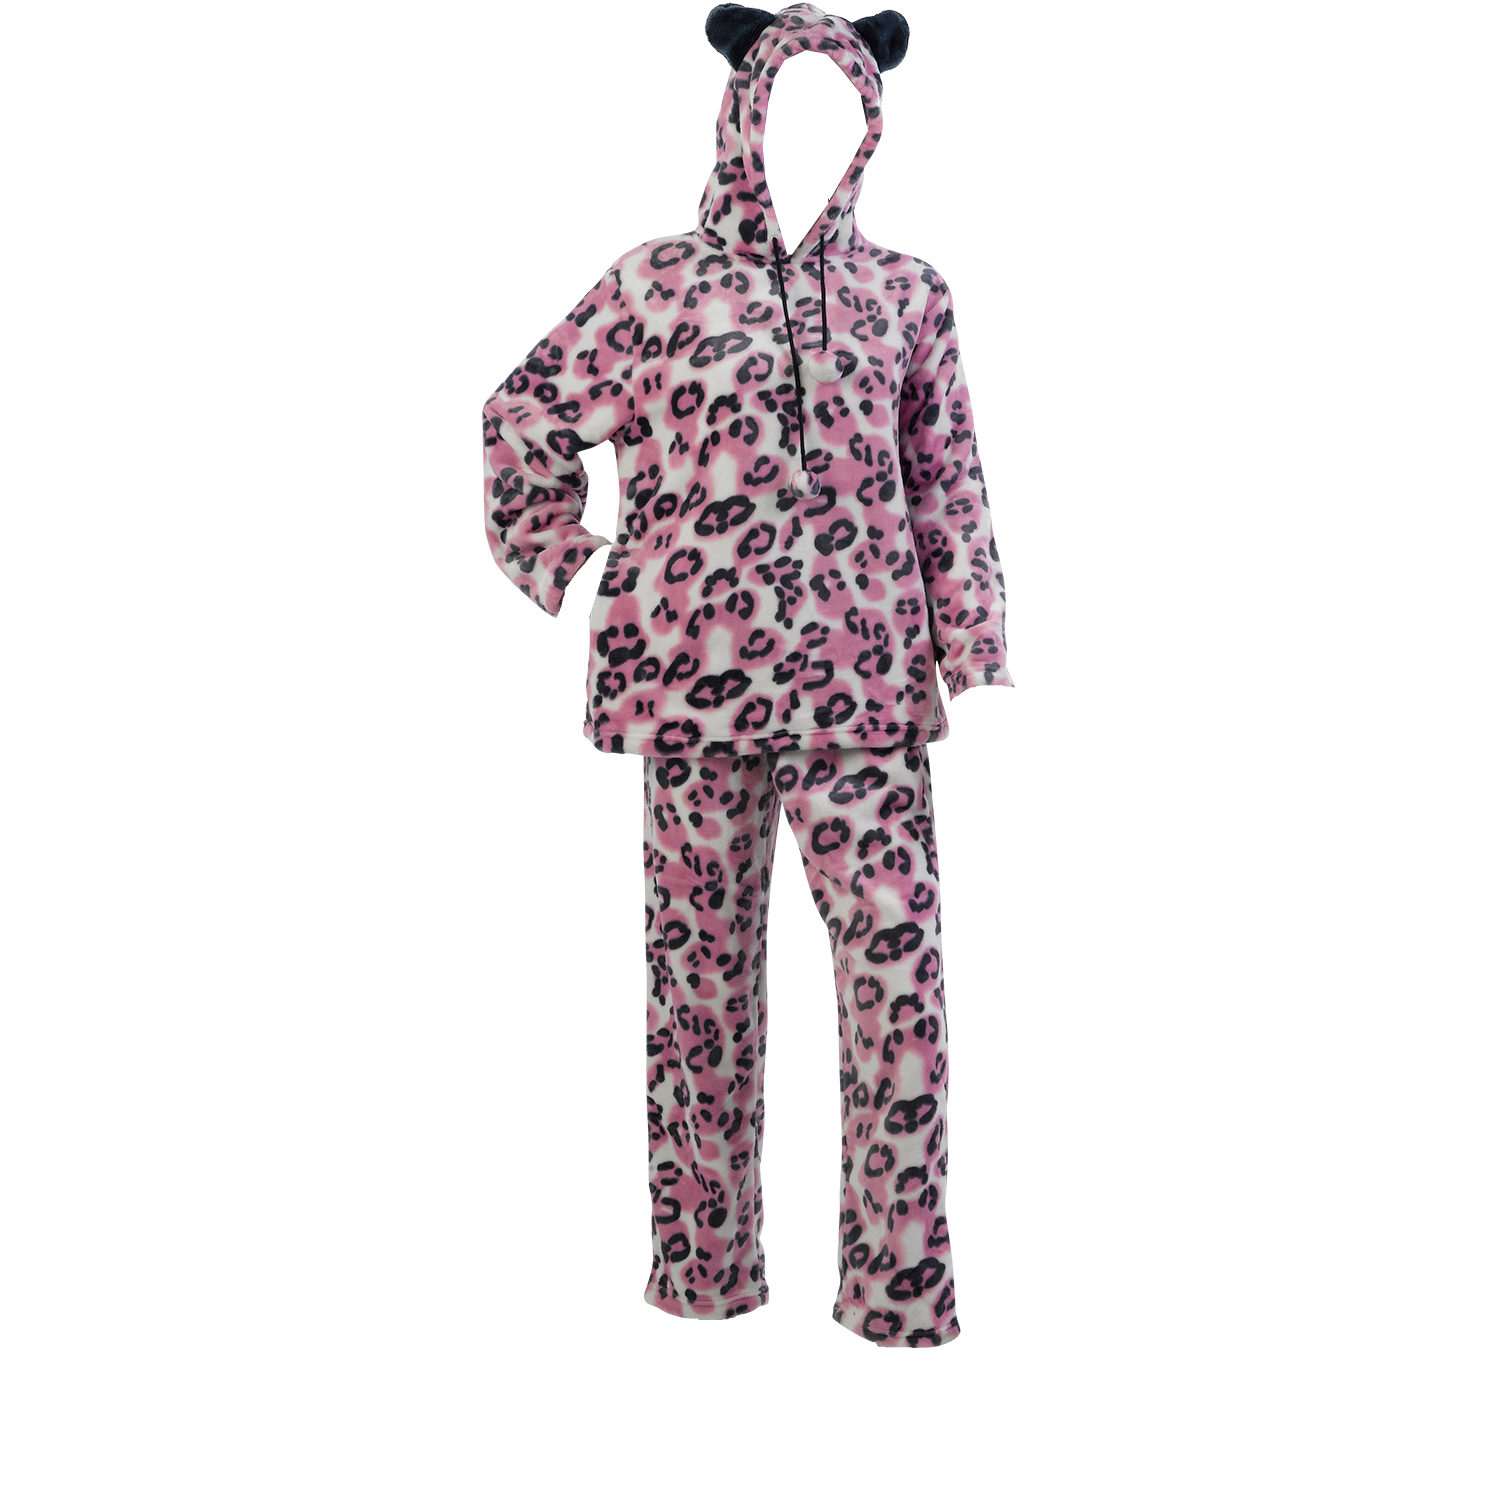 These luxurious ladies soft mink fleece animal print pyjamas are super cosy  and come complete with a hood and ears. These PJs would be perfect for  lounging ... 49ef9b998